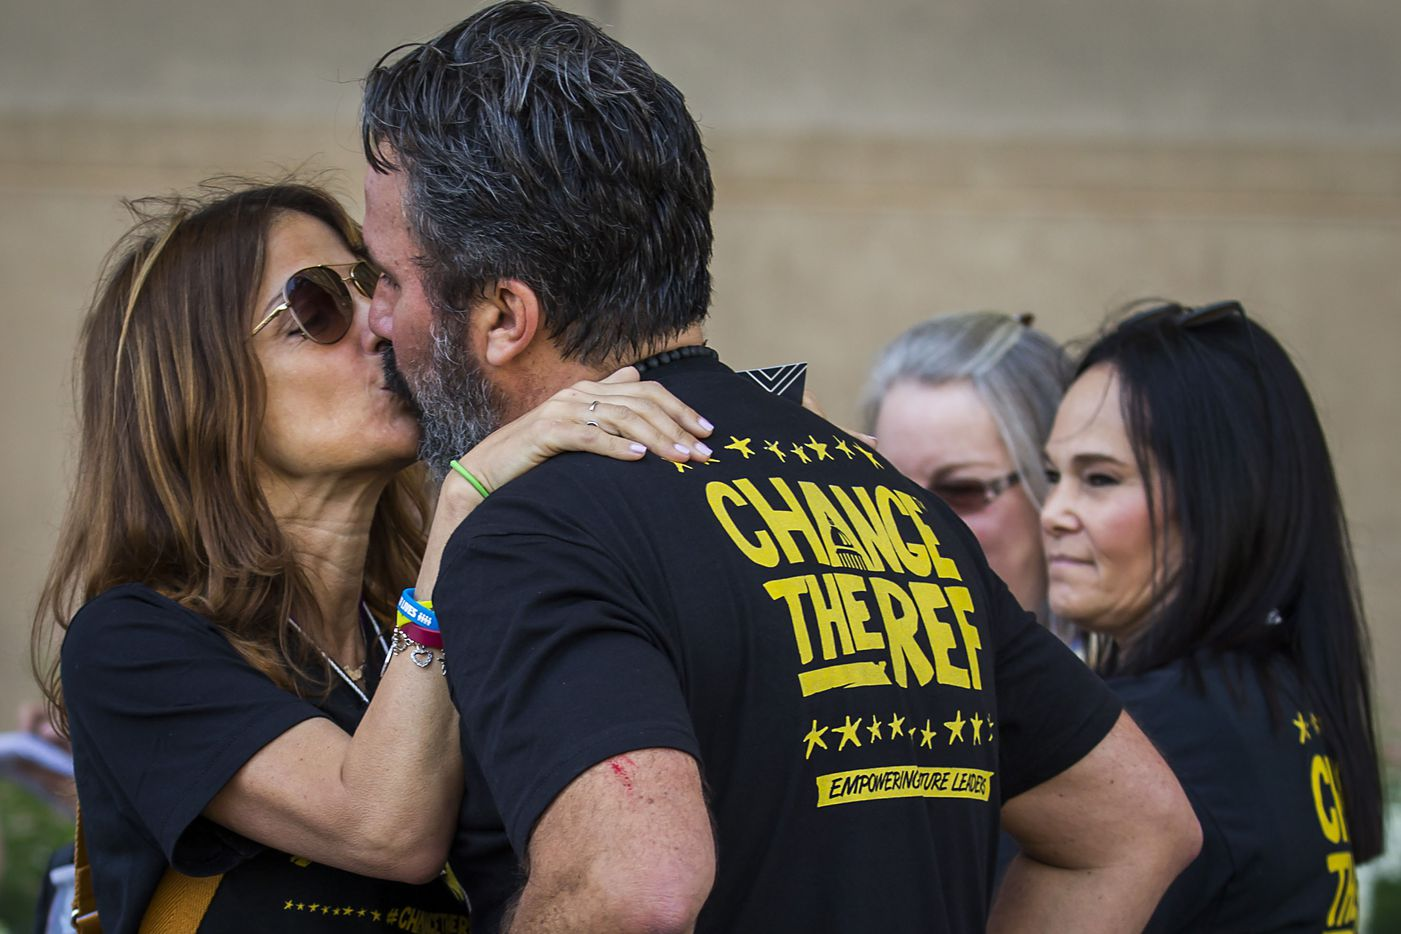 Manuel Oliver gets a kiss from his wife Patricia after speaking during a gun control demonstration outside Dallas City Hall organized by StudentsMarch.org during the NRA Annual Meeting & Exhibits at the Kay Bailey Hutchison Convention Center on Saturday, May 5, 2018, in Dallas. The Oliver's son Joaquin was one of the 17 victims of a mass shooting at Marjory Stoneman Douglas High School in Parkland, Florida. (Smiley N. Pool/The Dallas Morning News)